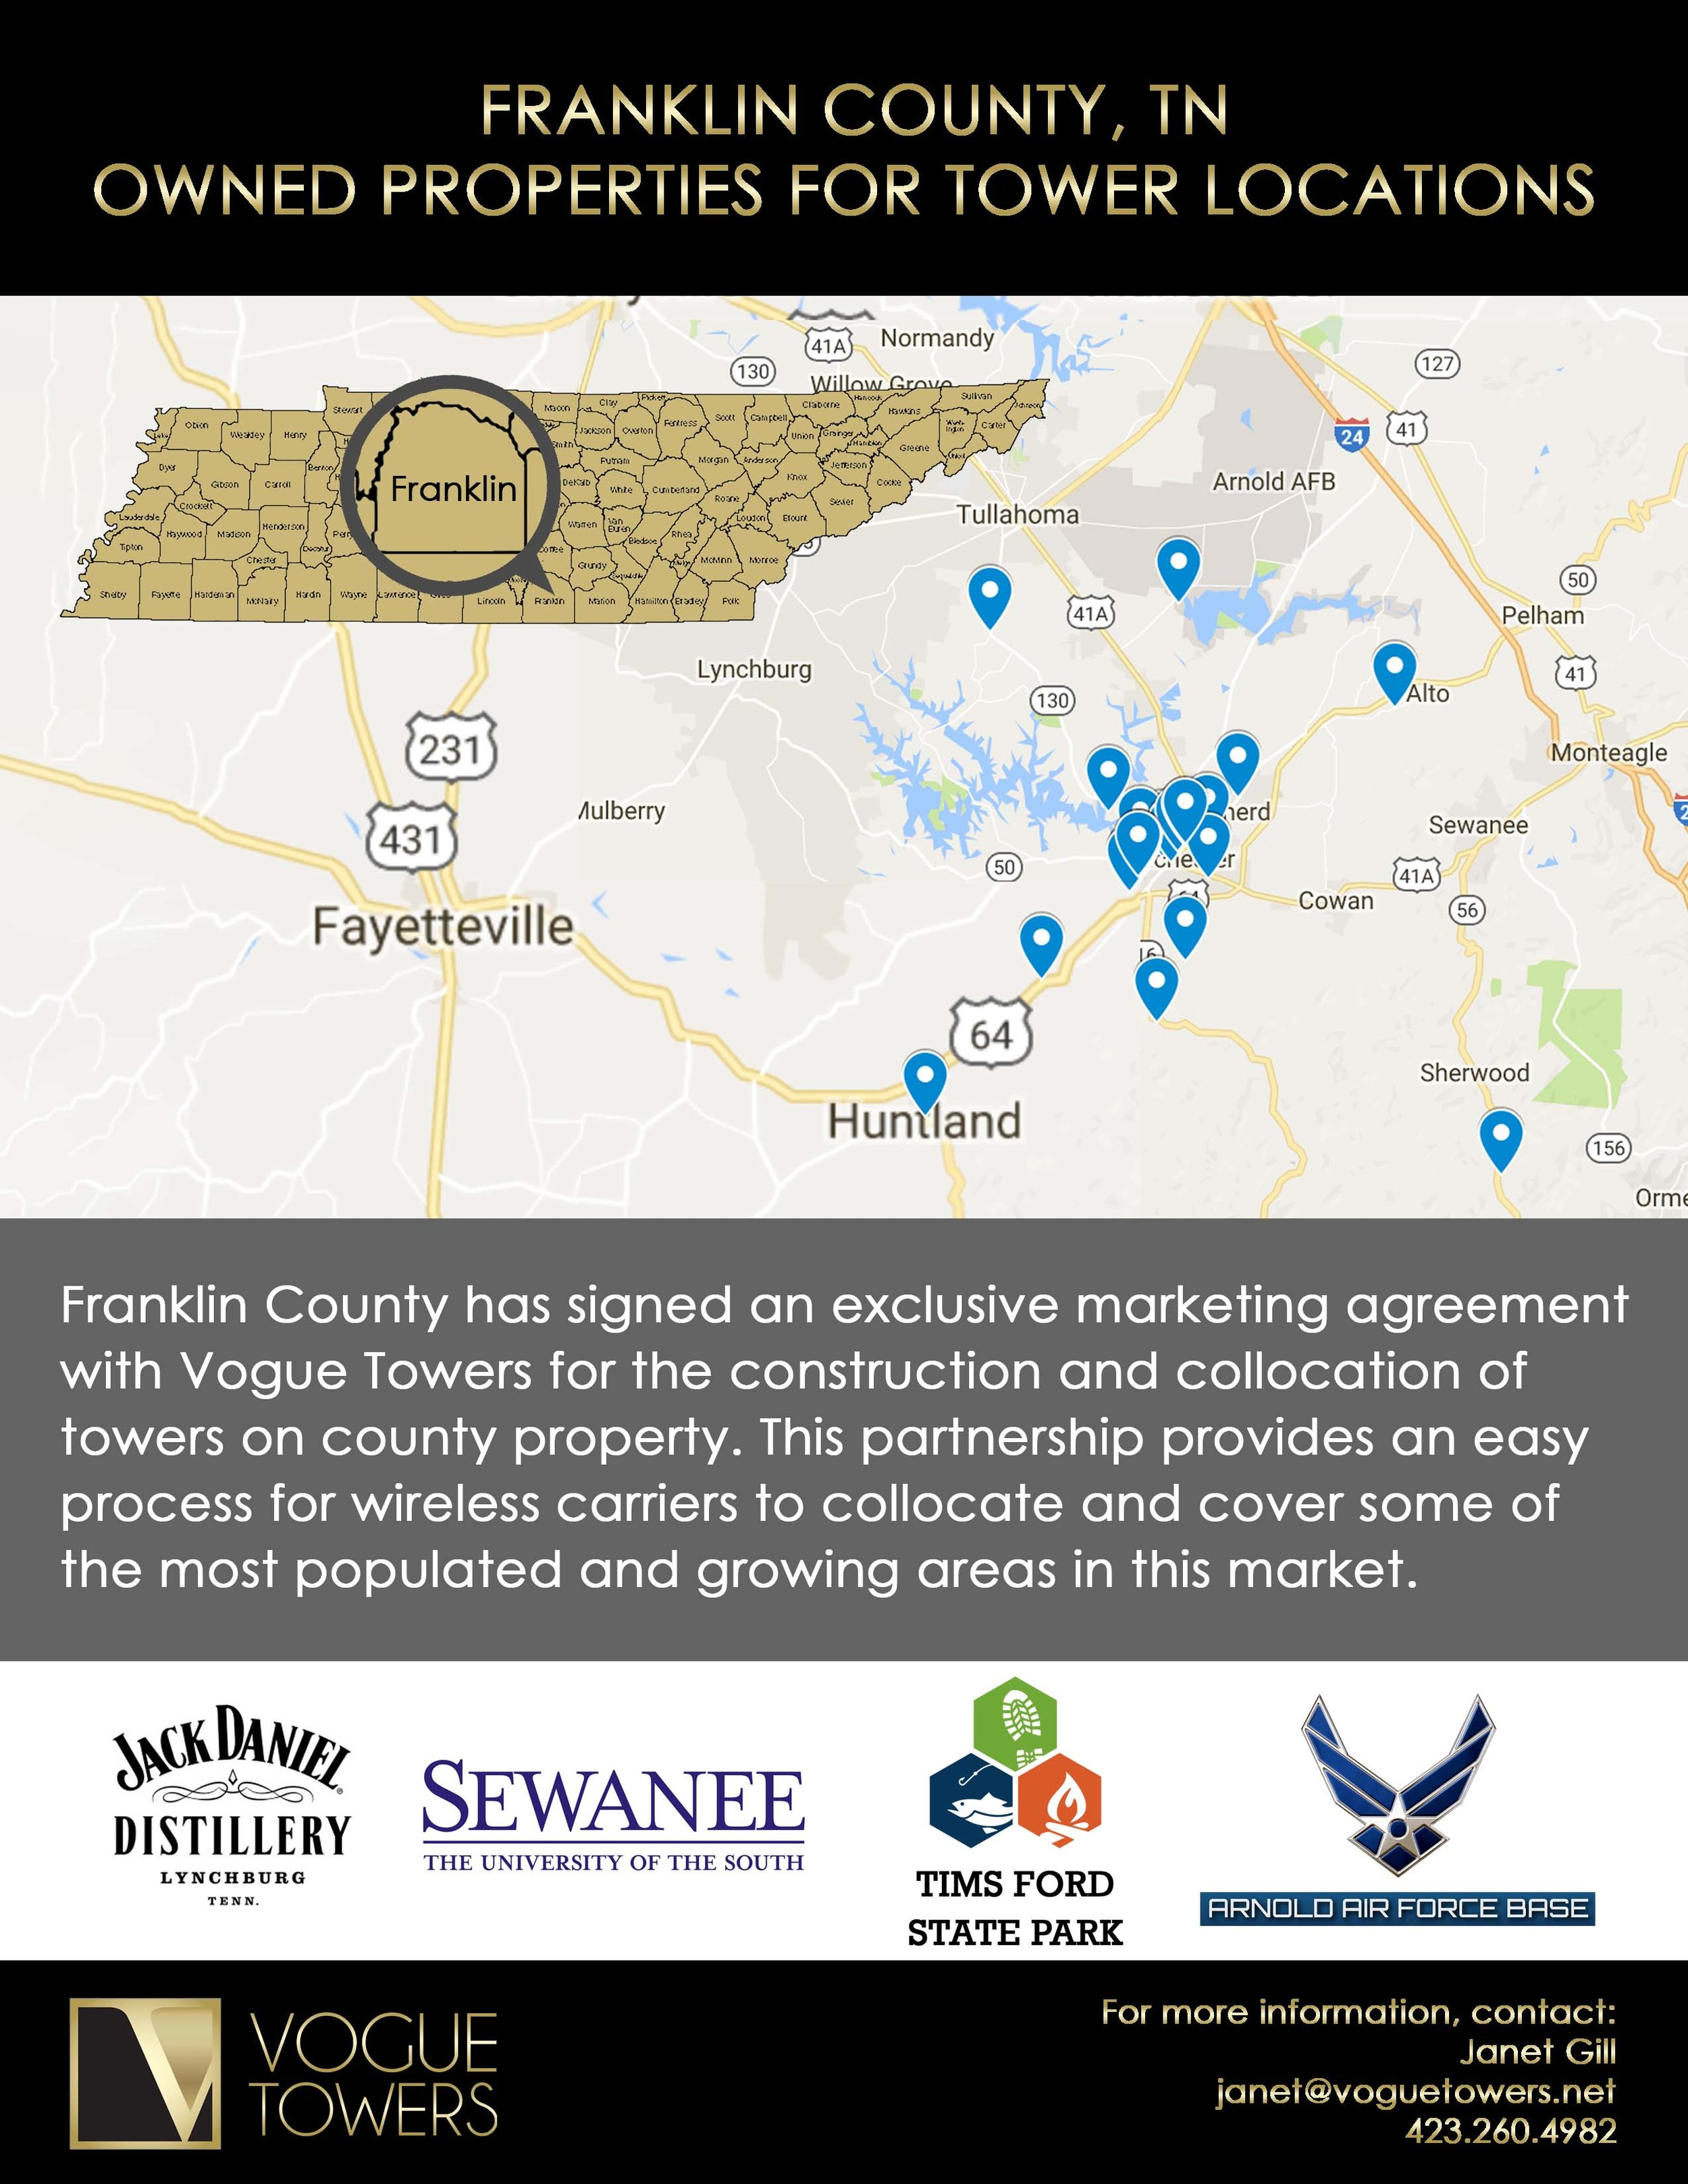 vogue-towers-franklin-county-tn-ad